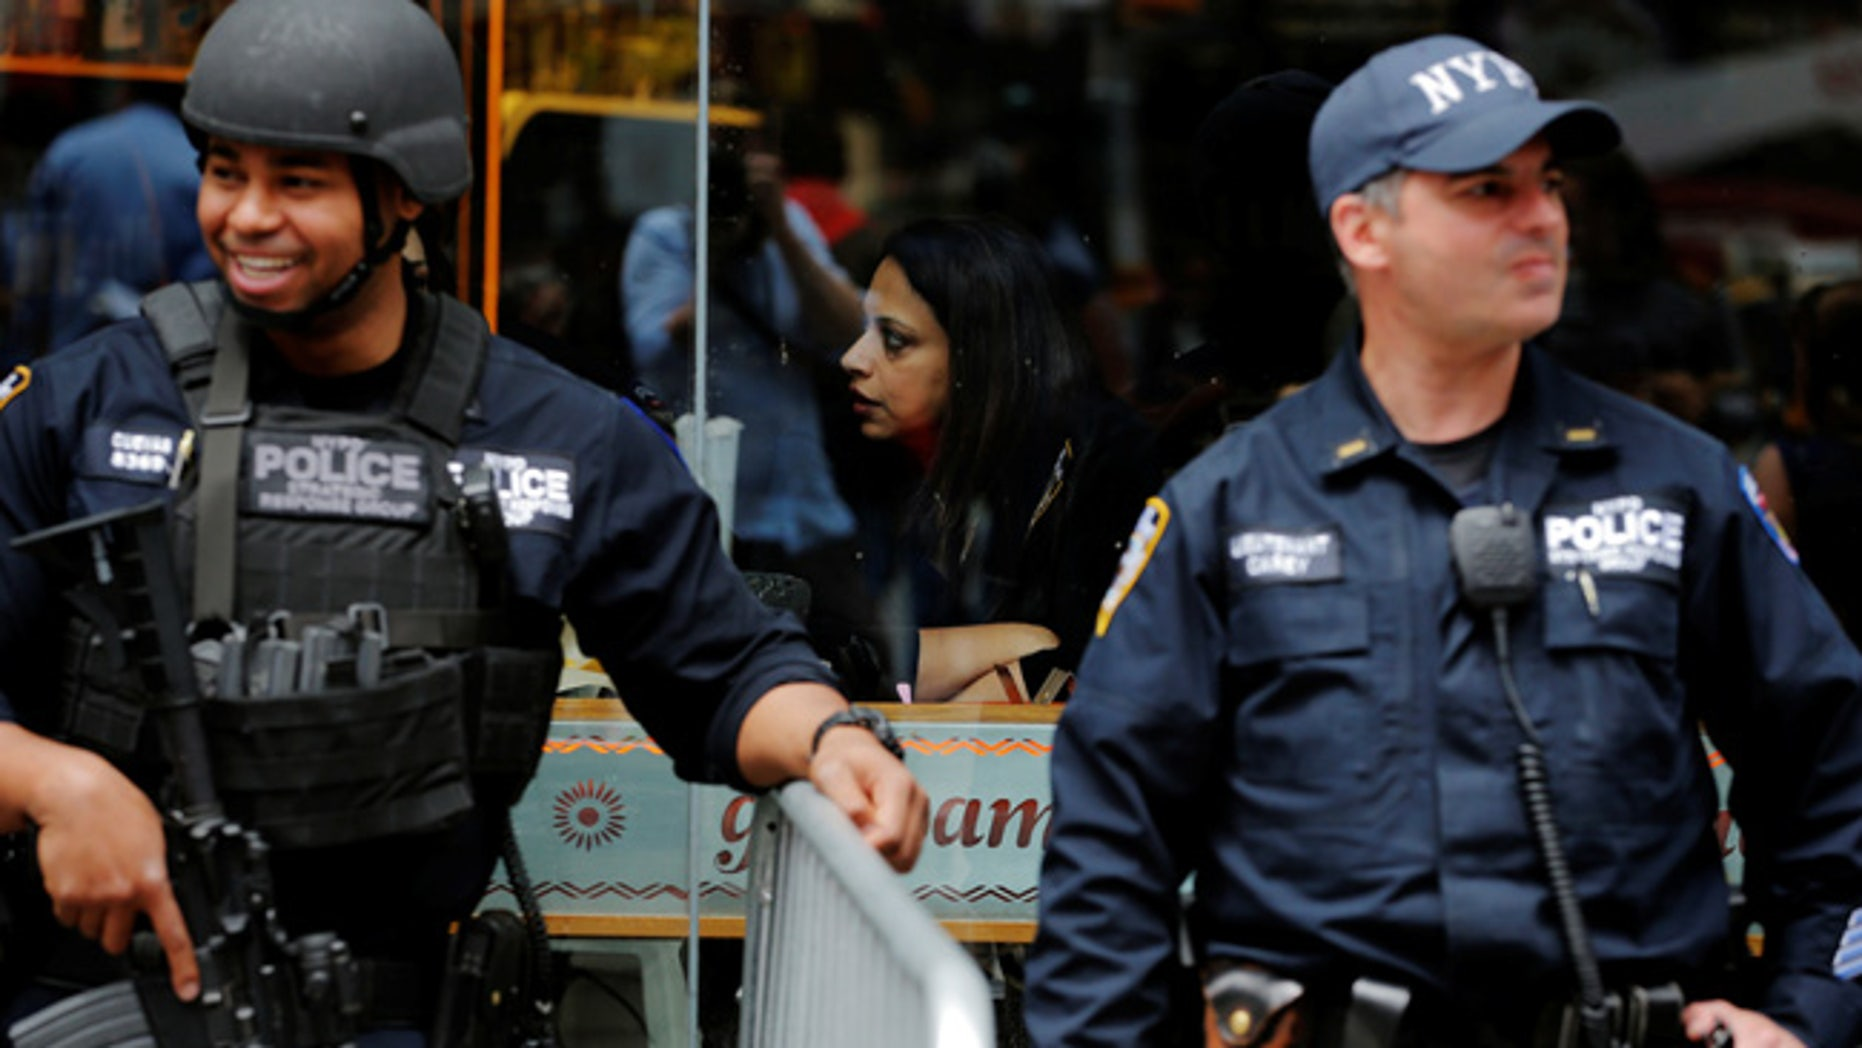 New York Police Department officers monitor crowds in Times Square as part of an increased security presence in New York, U.S., May 23, 2017.  REUTERS/Lucas Jackson - RTX379E0